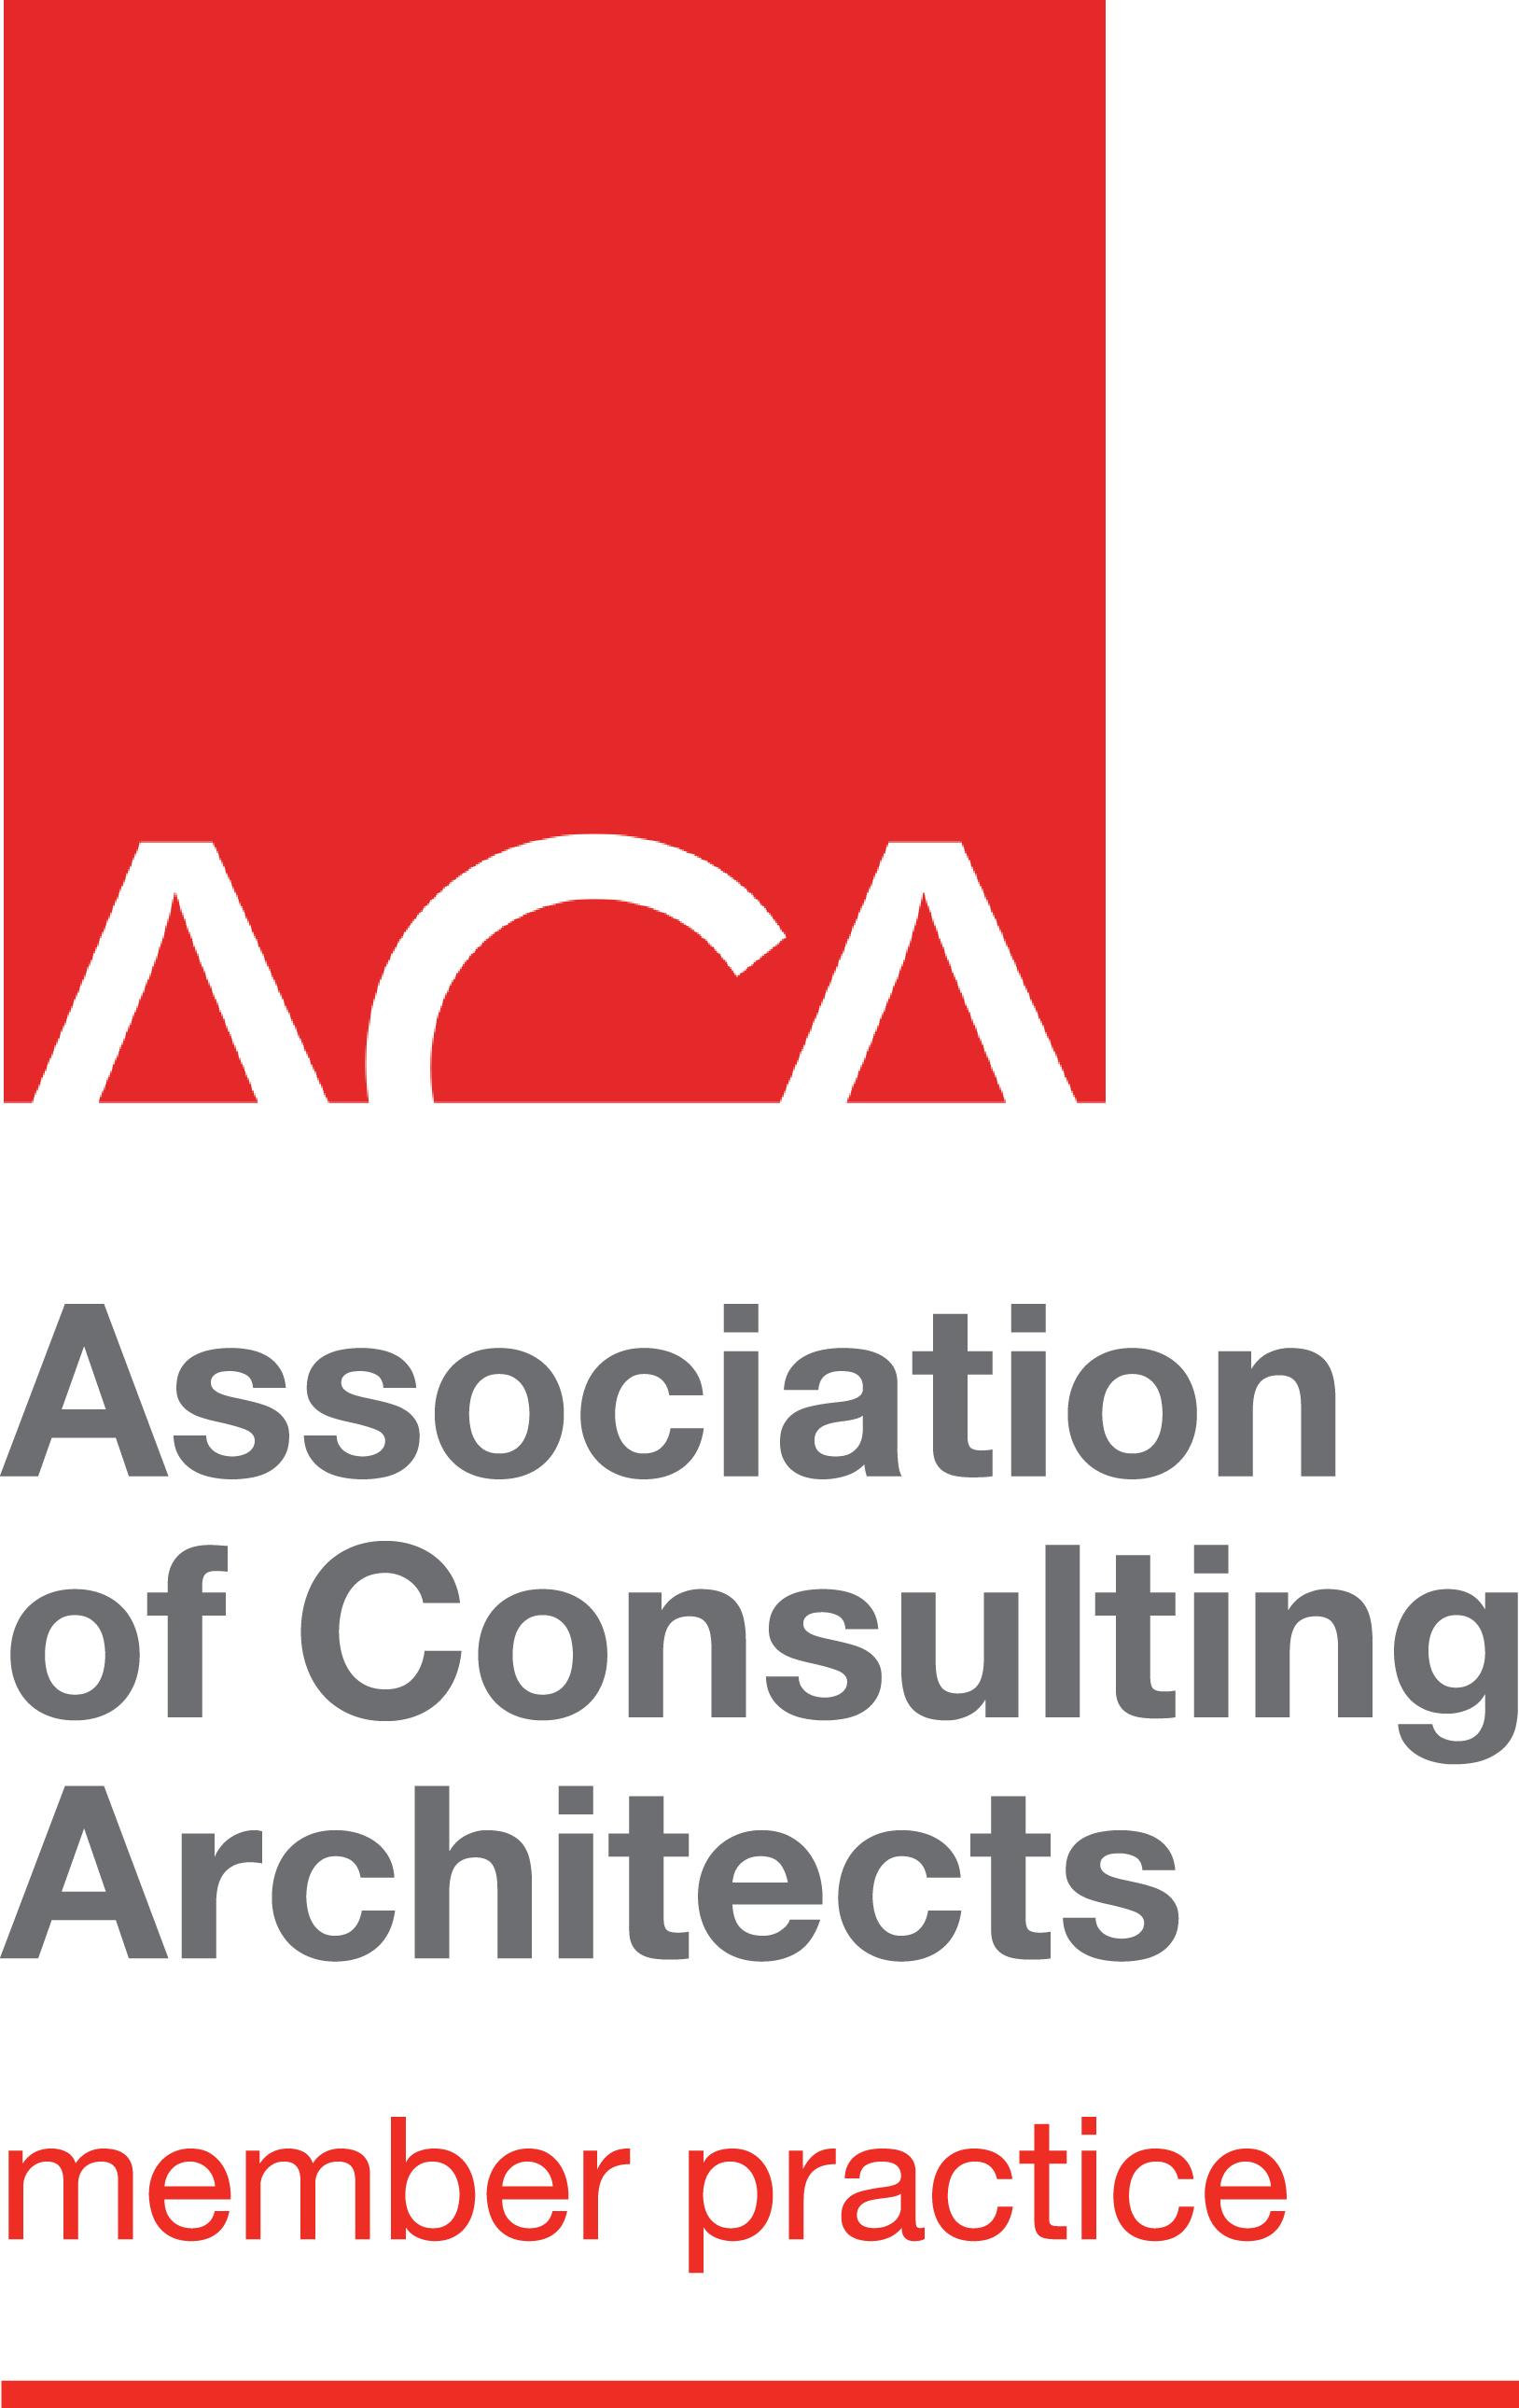 Association of Consulting Architects Member Practice